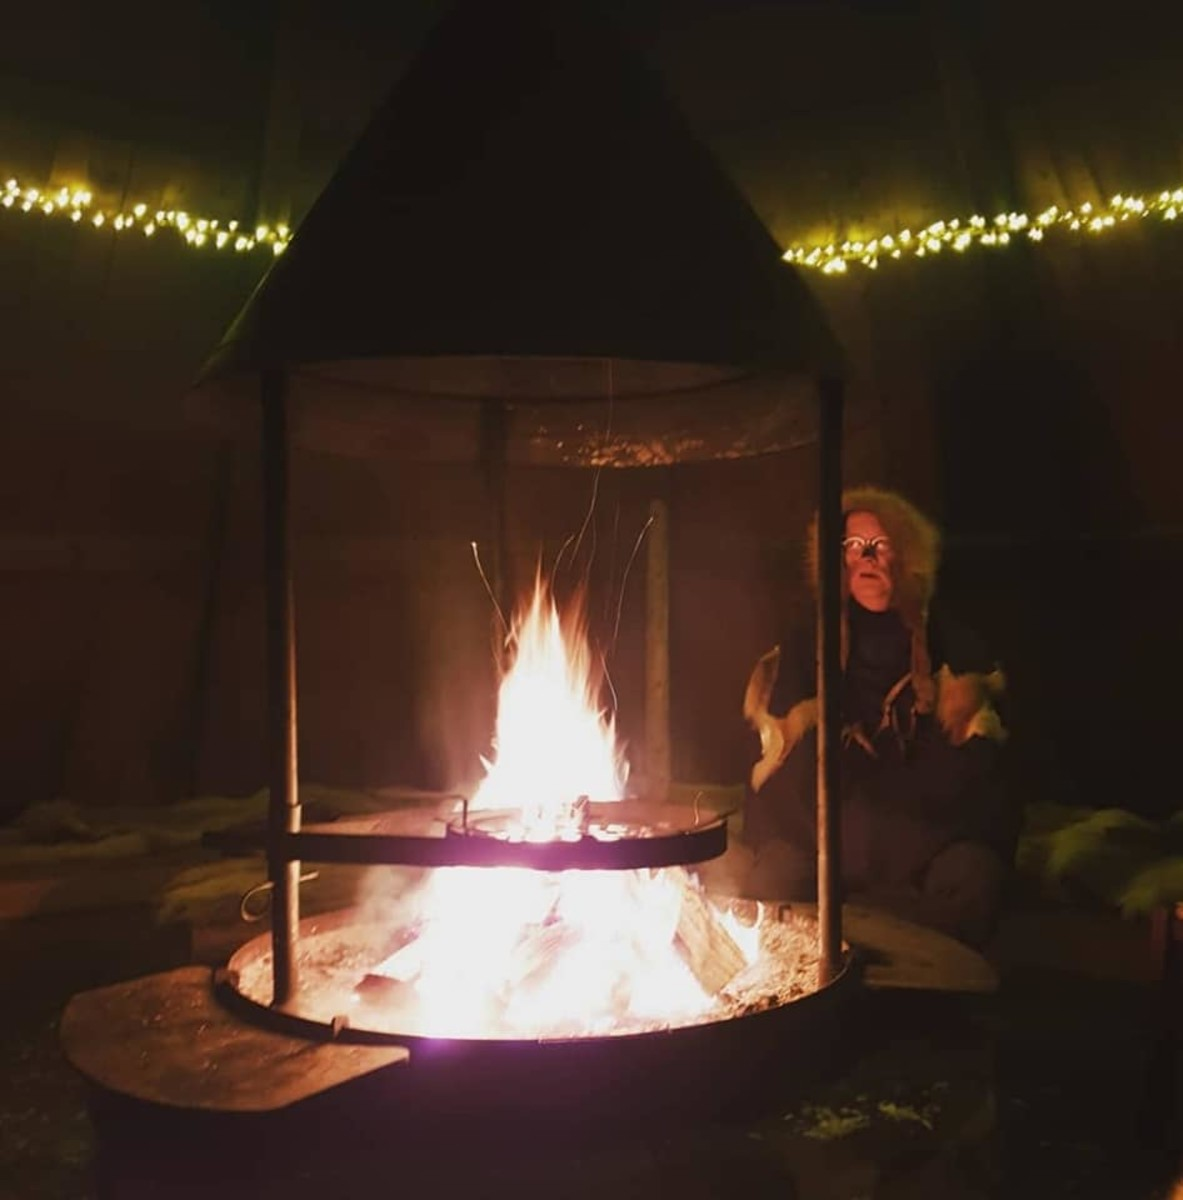 At the noadi's fire.